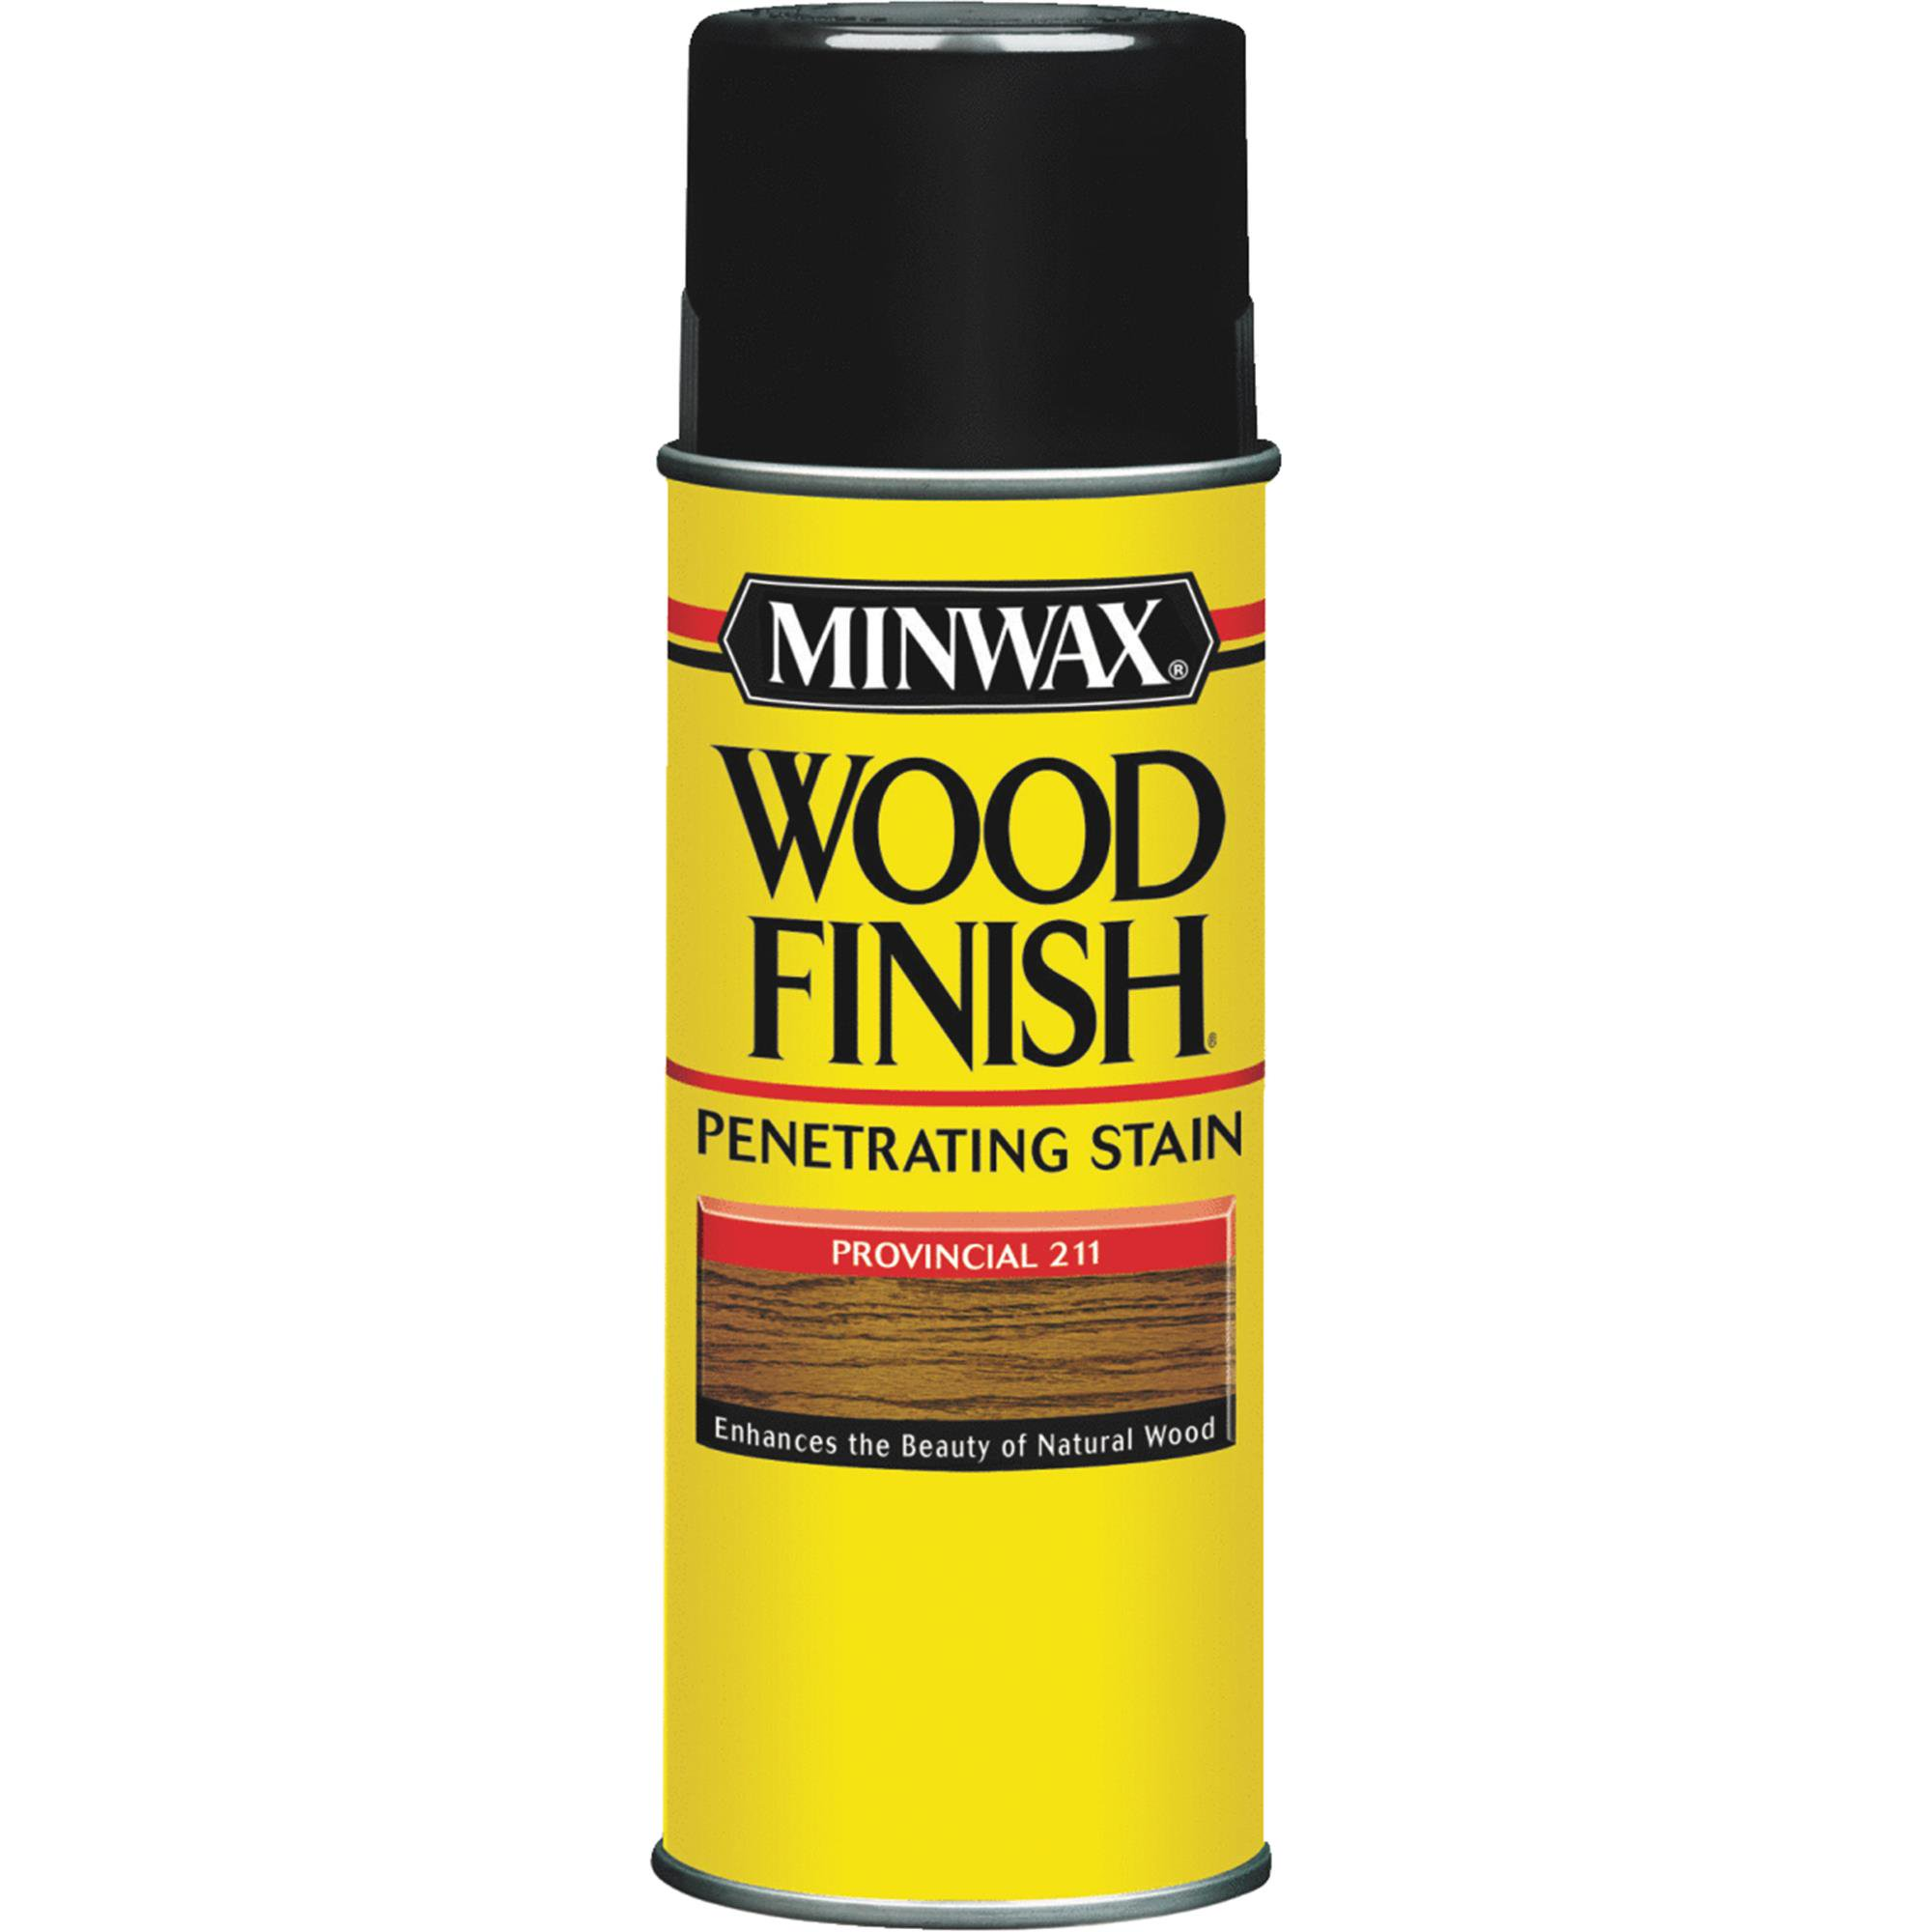 Minwax Wood Finish Interior Spray Stain